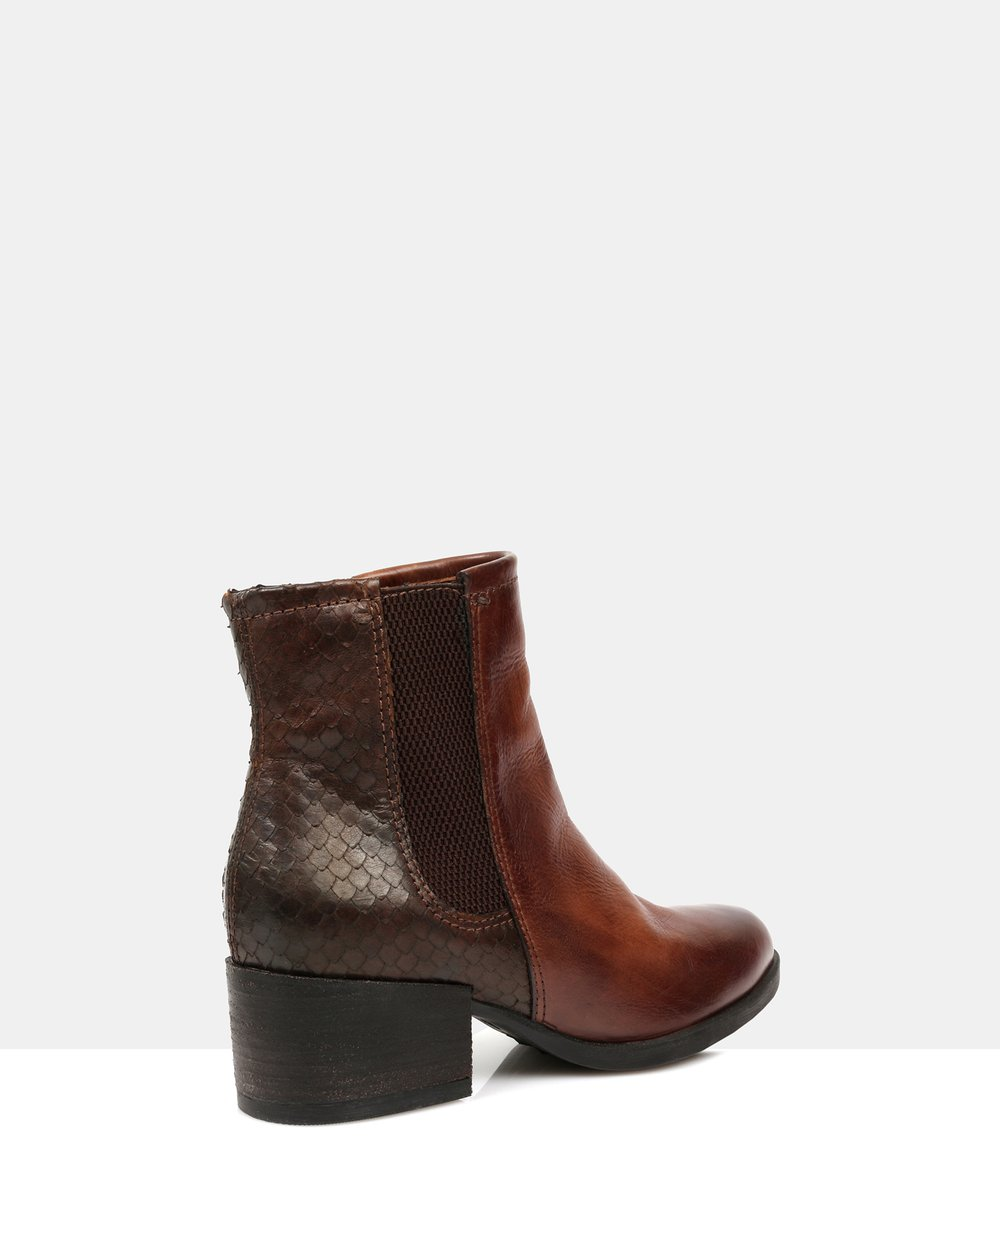 4625caf66 Marisa Leather Ankle Boots by Sempre Di Online